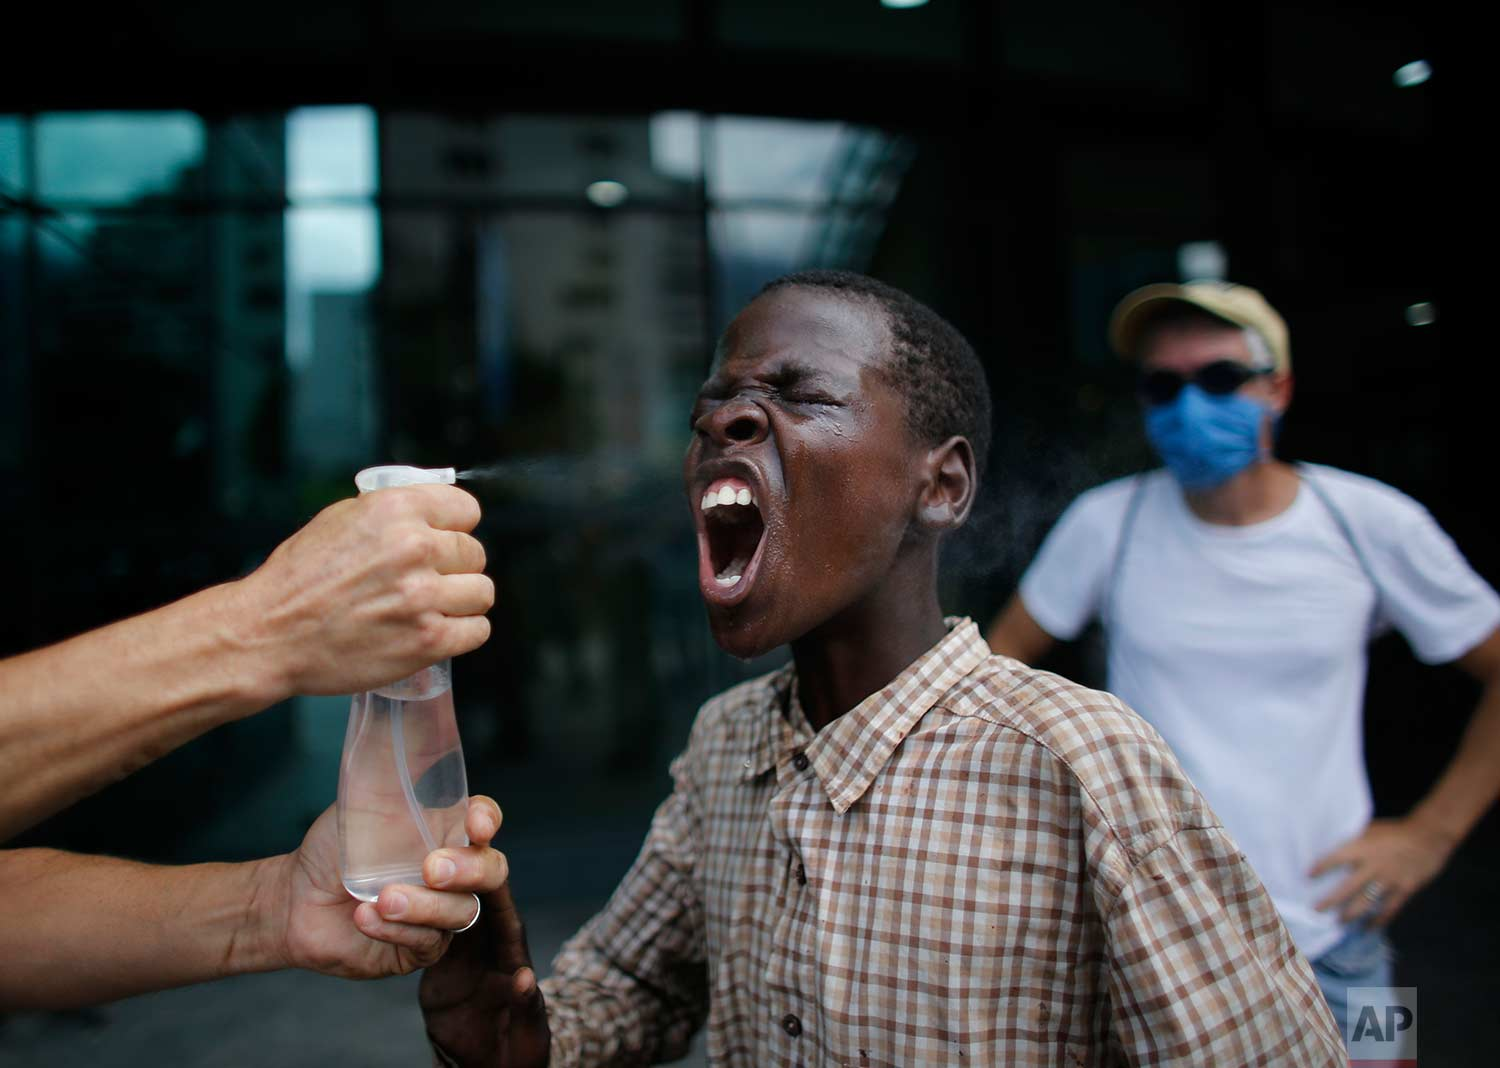 A youth has his face rinsed from the effects of tear gas after security forces lobbed tear gas at demonstrators sheltering inside a shopping mall during a protest march in Caracas, Venezuela, Thursday, July 6, 2017. (AP Photo/Ariana Cubillos)